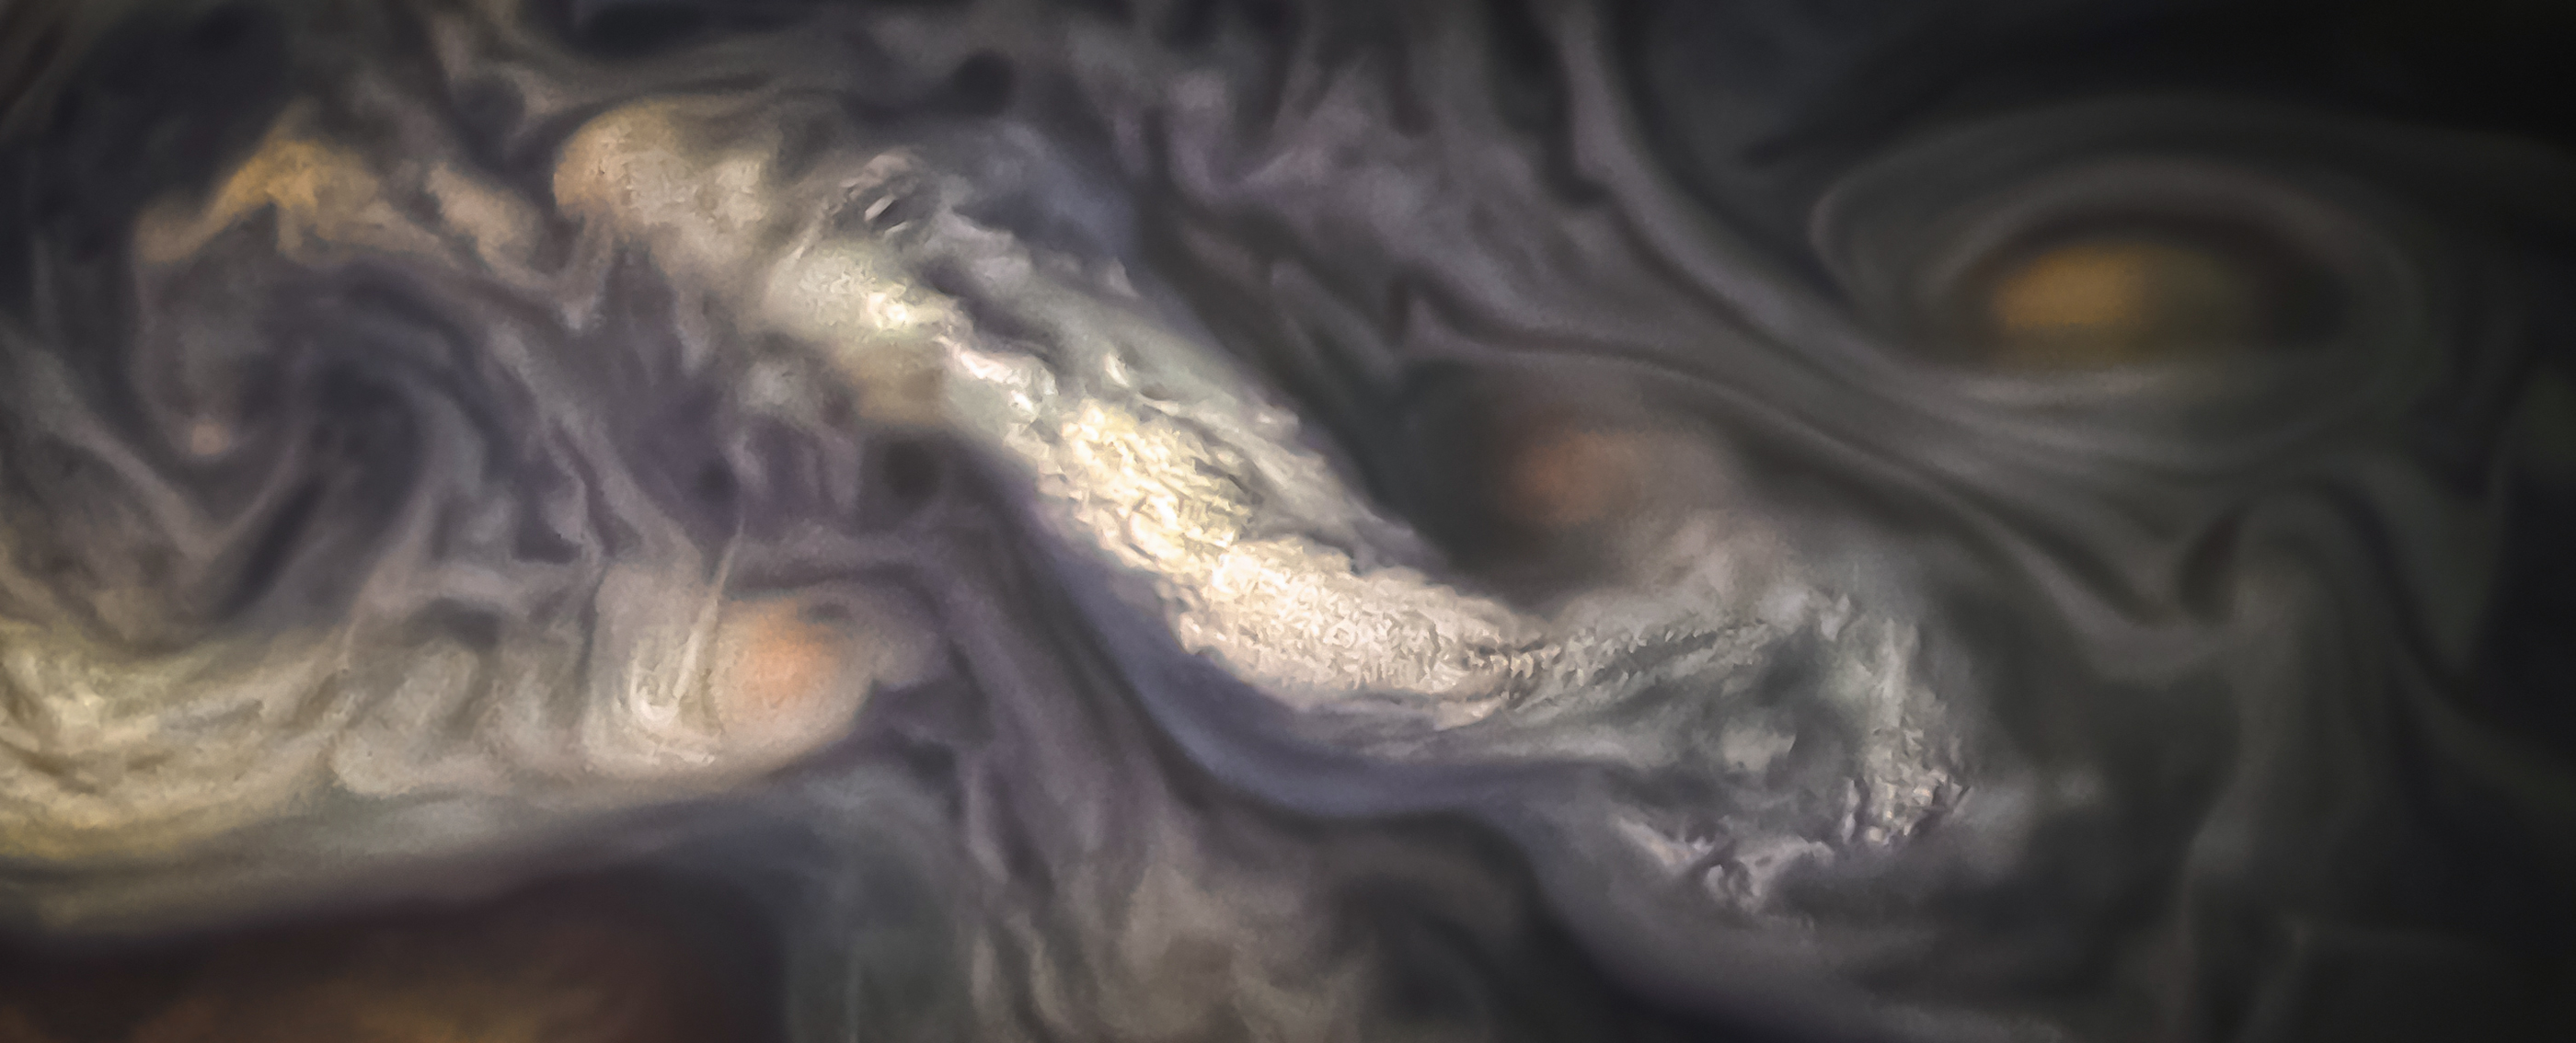 Jupiter's Breathtaking Cloud Formations on Display in New